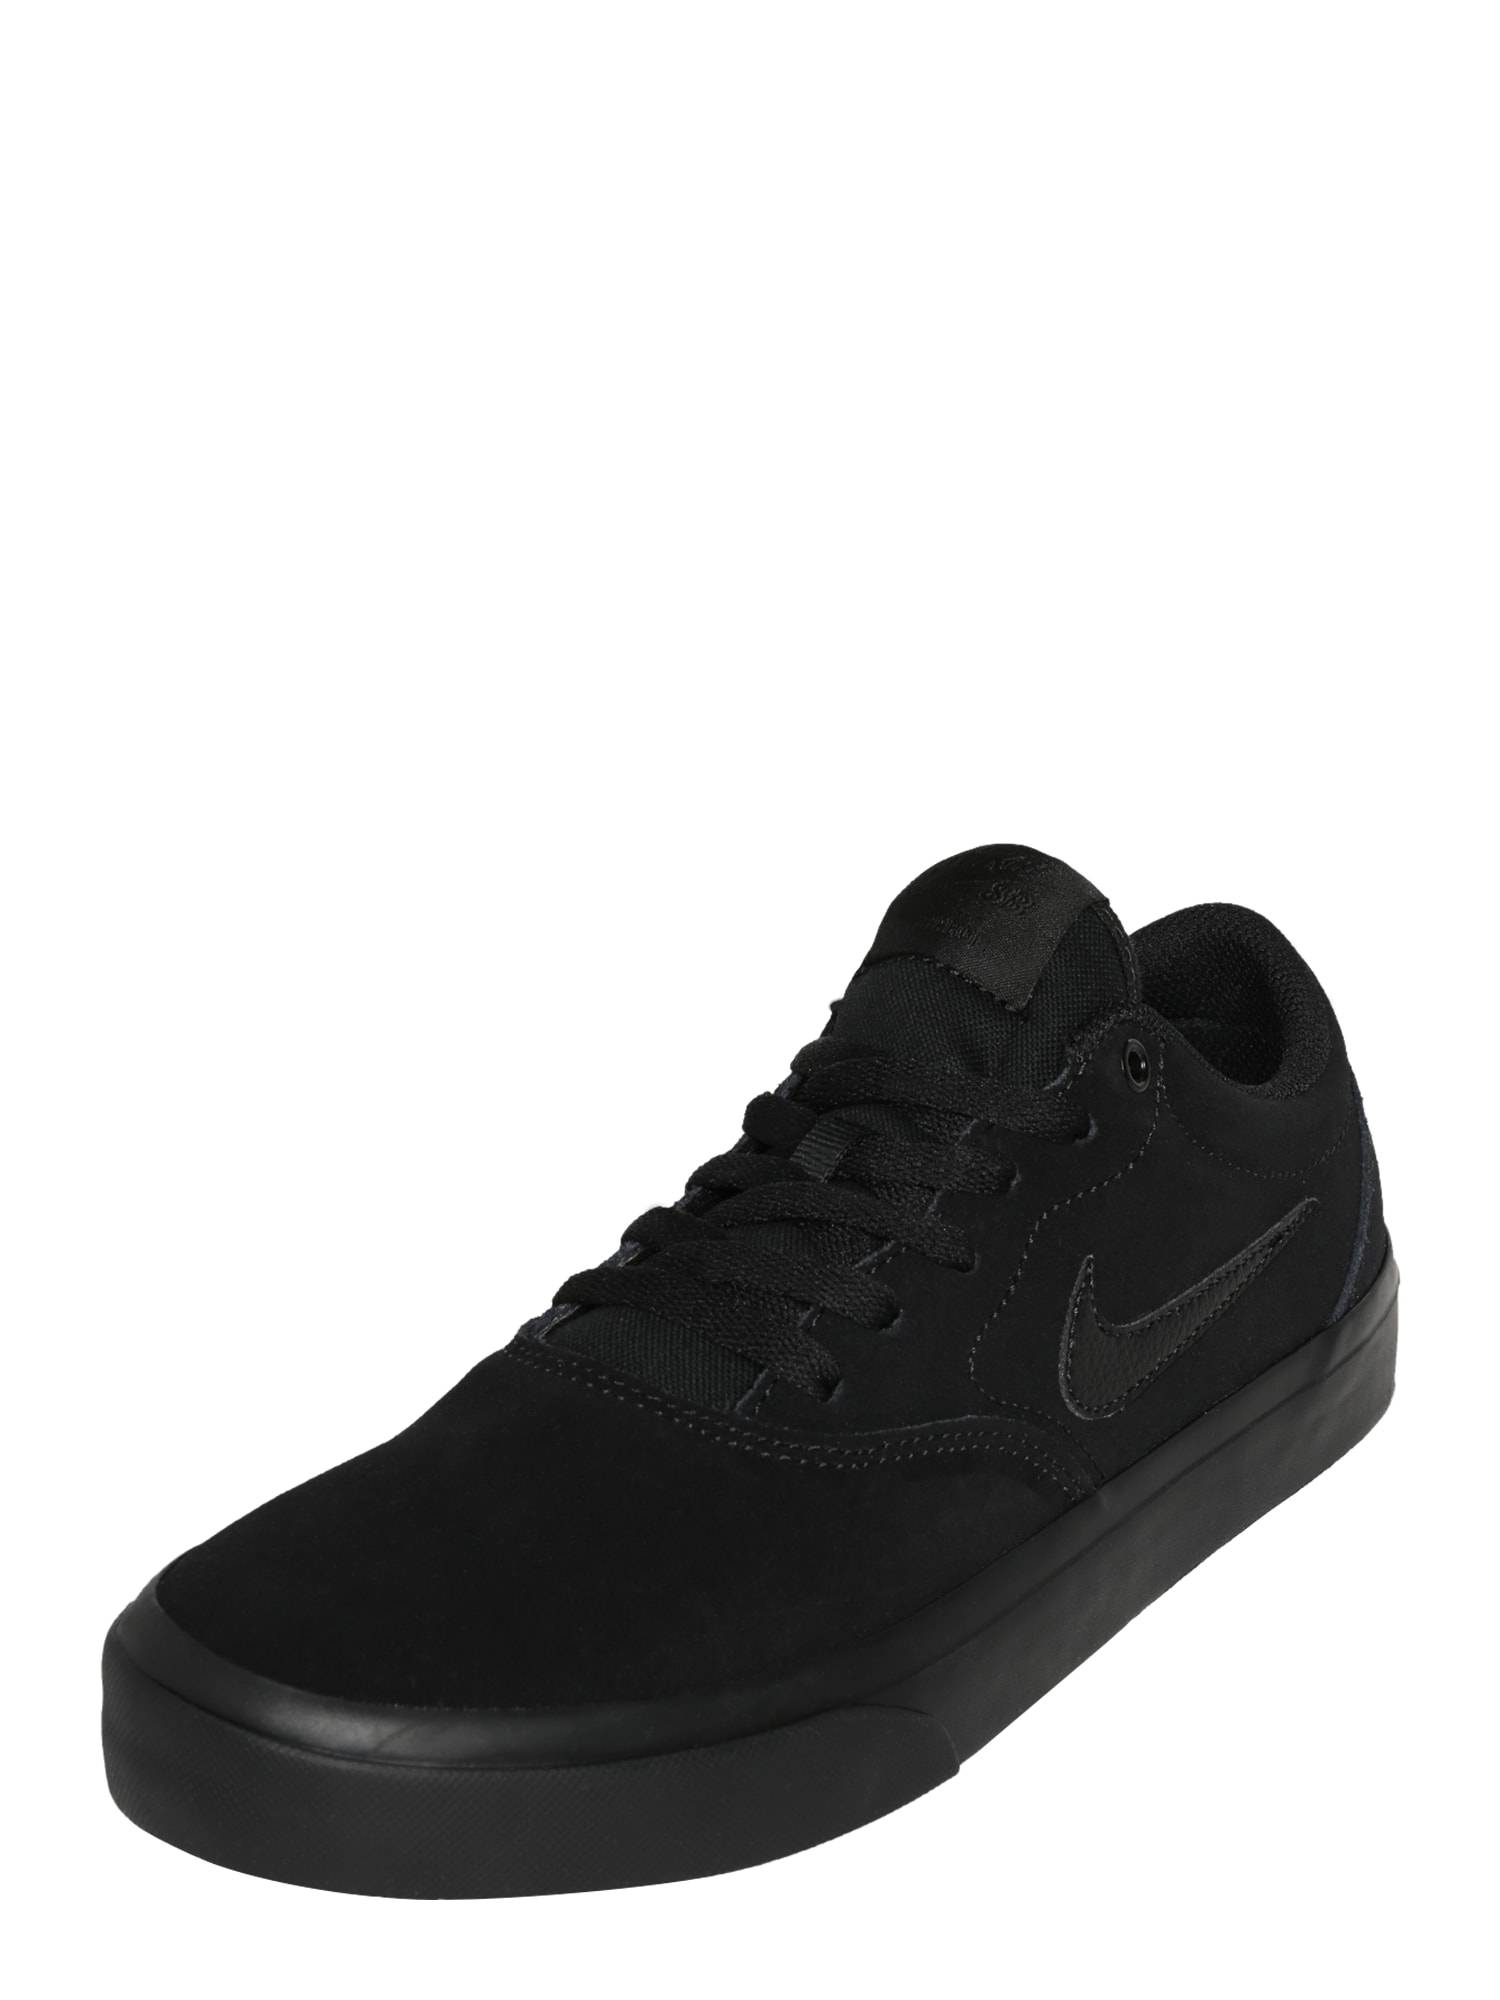 Nike SB Baskets basses 'Charge Suede'  - Noir - Taille: 11 - male